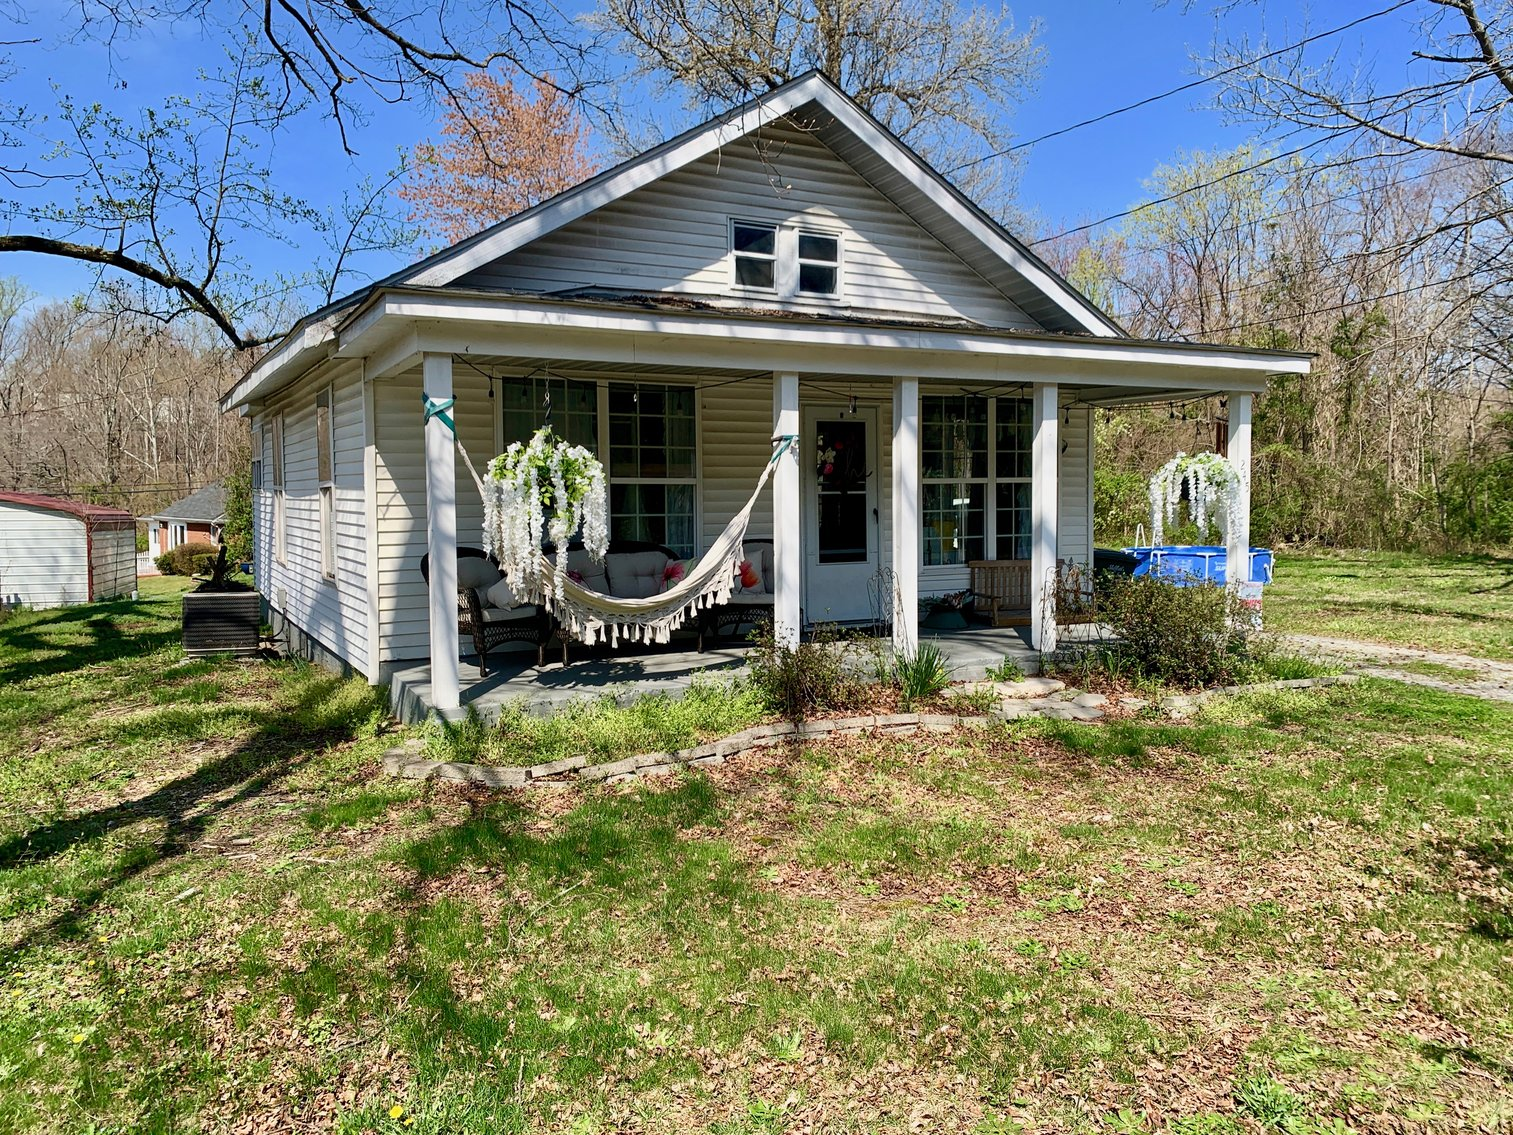 Image for 2 BR/1 BA Income Producing Home Minutes from Downtown Fredericksburg, VA--Part of a 3 Home Rental Portfolio